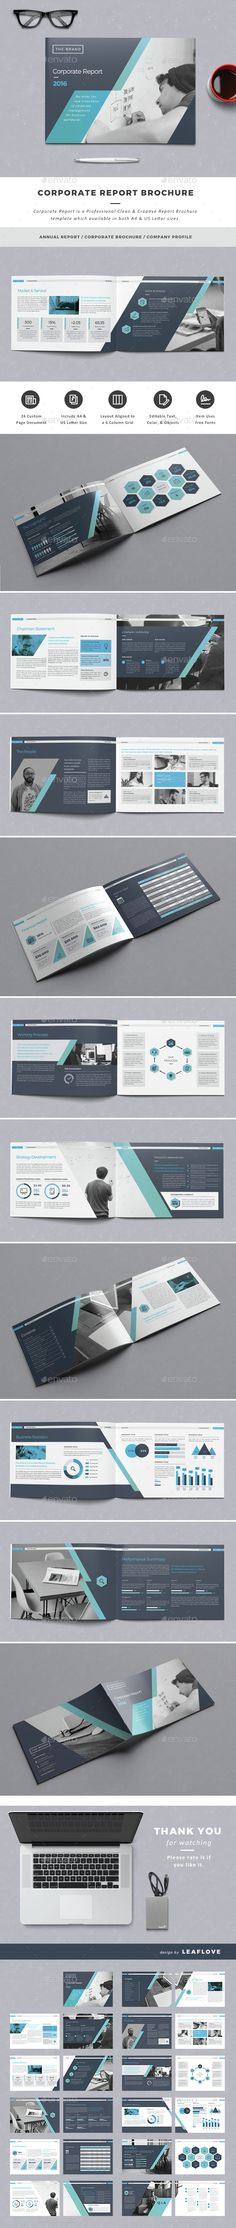 Qkdesign  I Will Design Professional Brochure Brochure Design